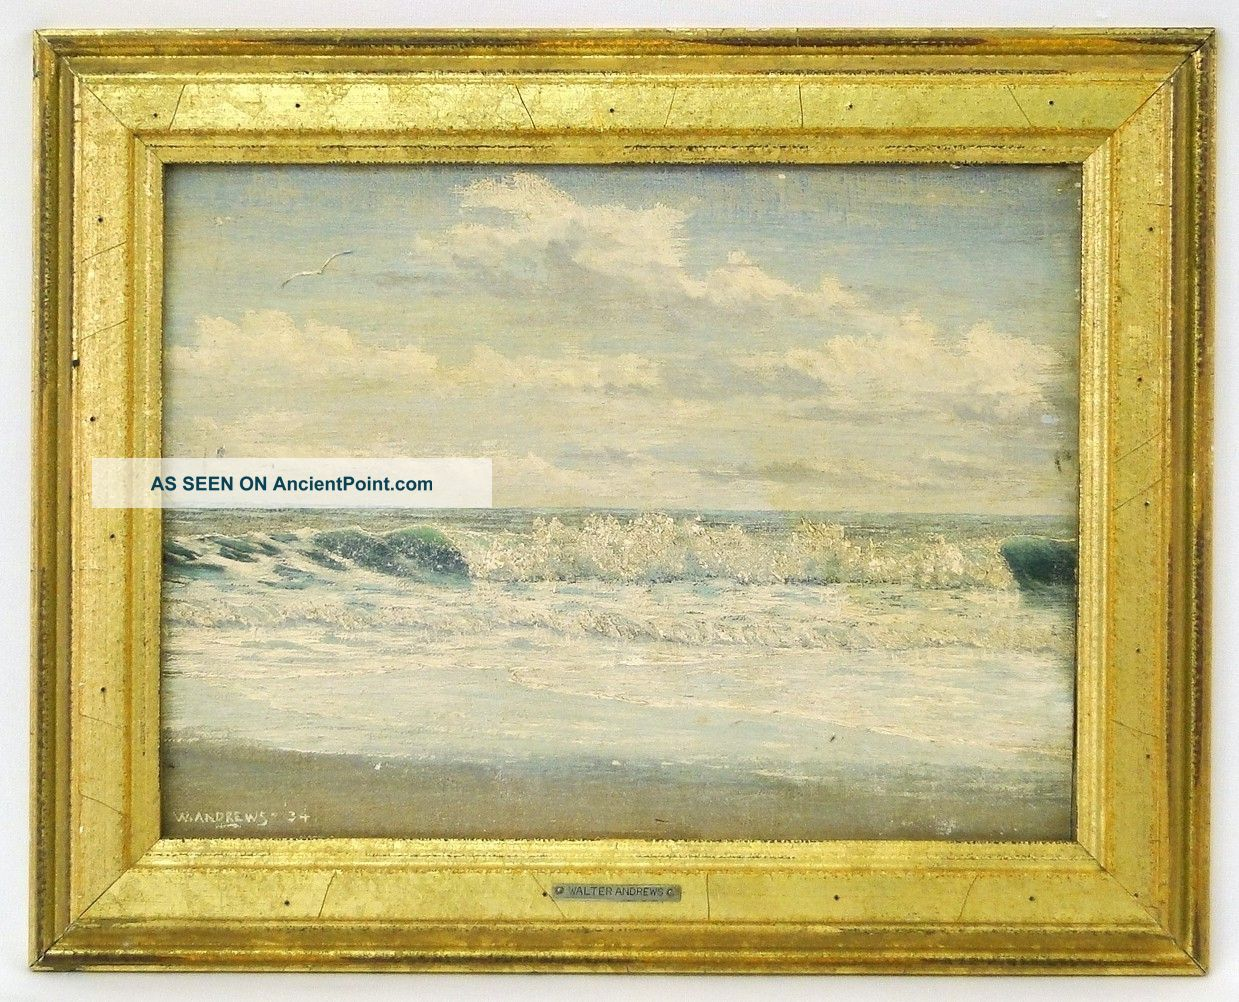 Walter Andrews Pennsylvania Artist Nautical Seascape Painting Gold Gilt Frame Other photo